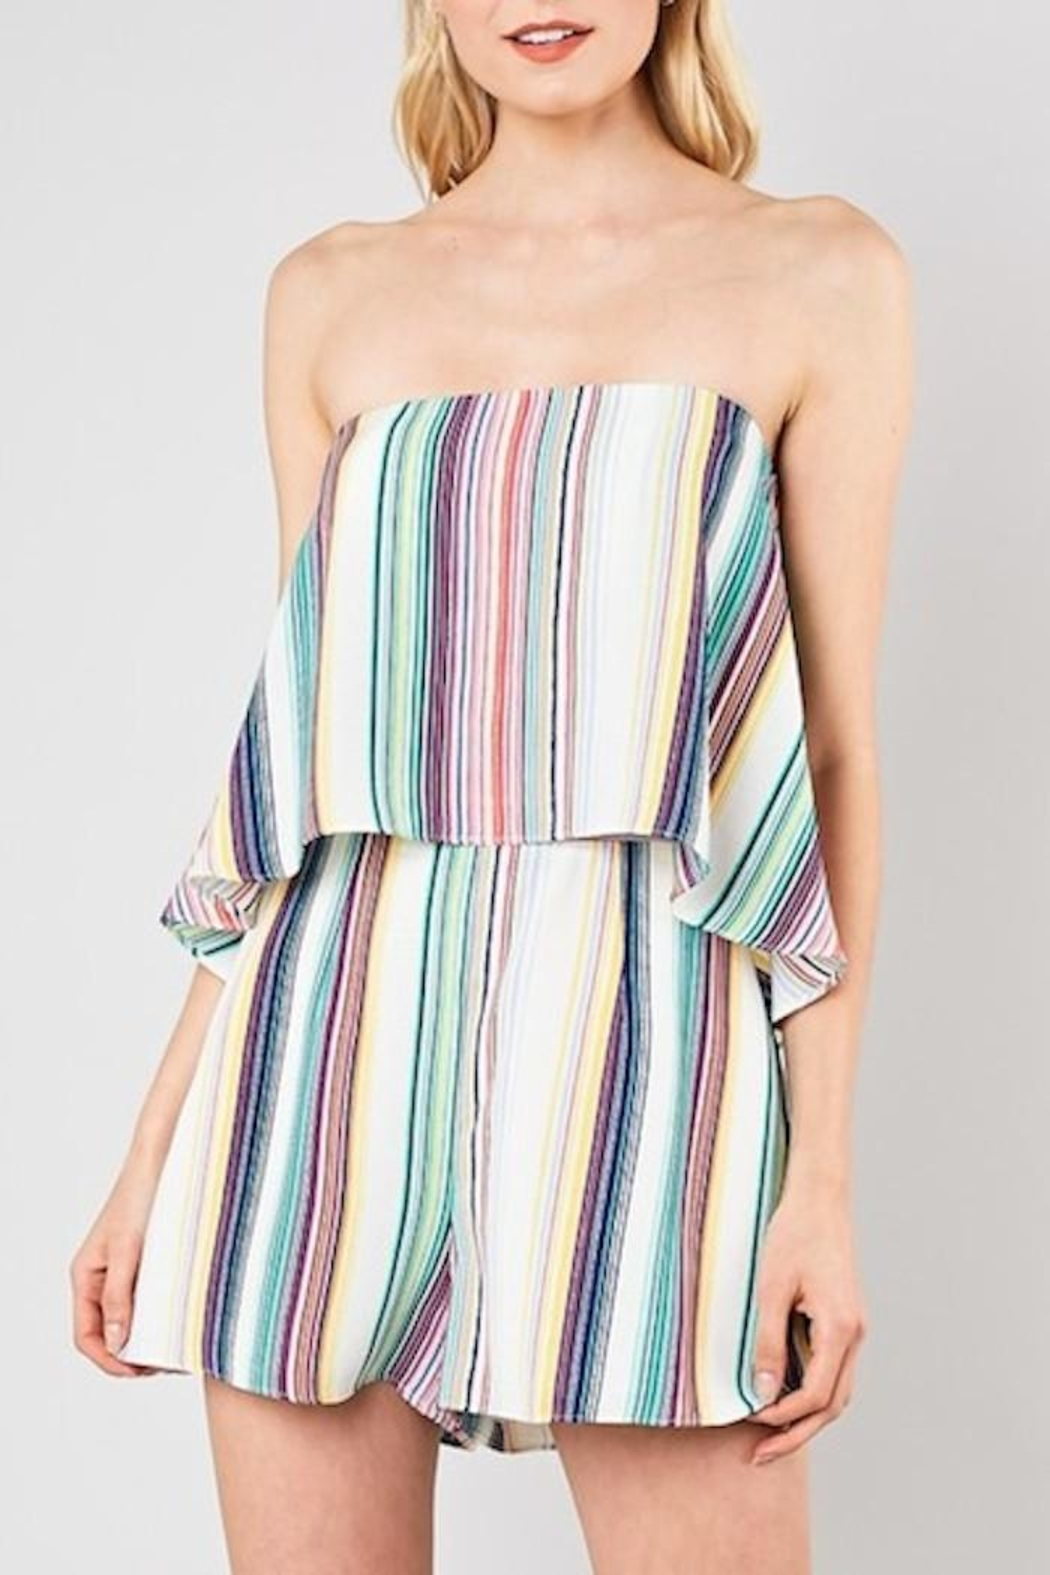 Do & Be Striped Strapless Romper - Main Image